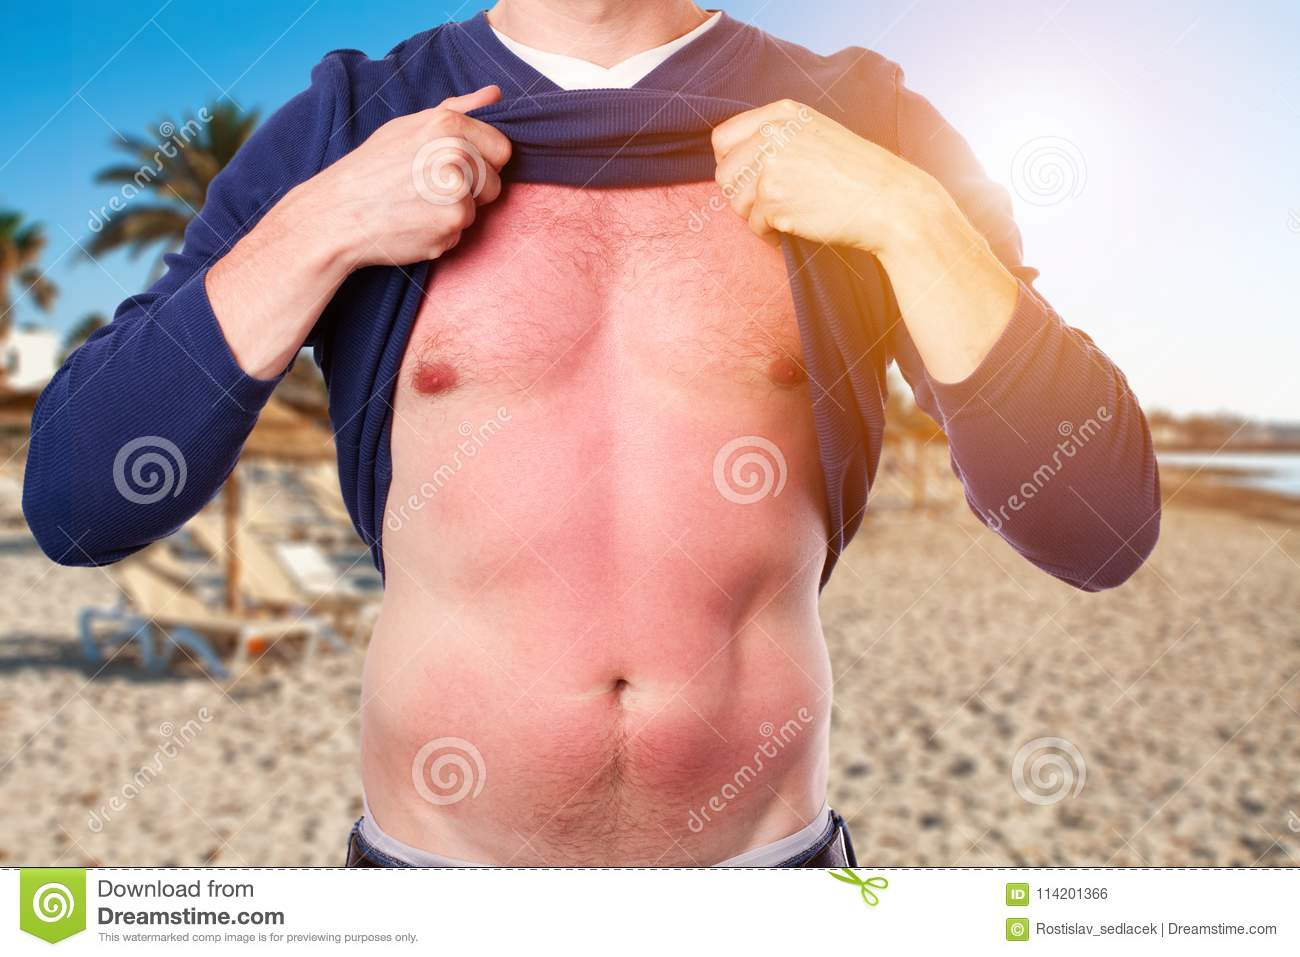 Man with sunburned skin from the sun on the beach